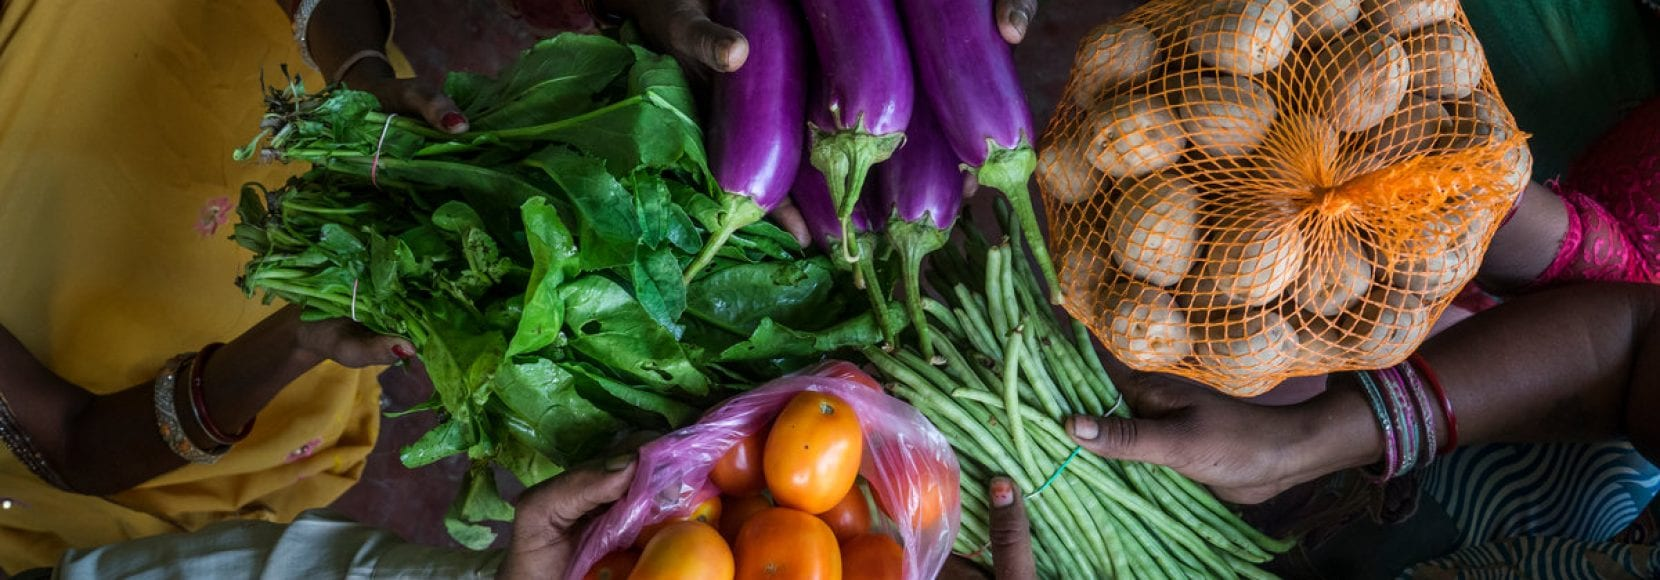 Women farmers hold an assortment of vegetables in Bihar, India